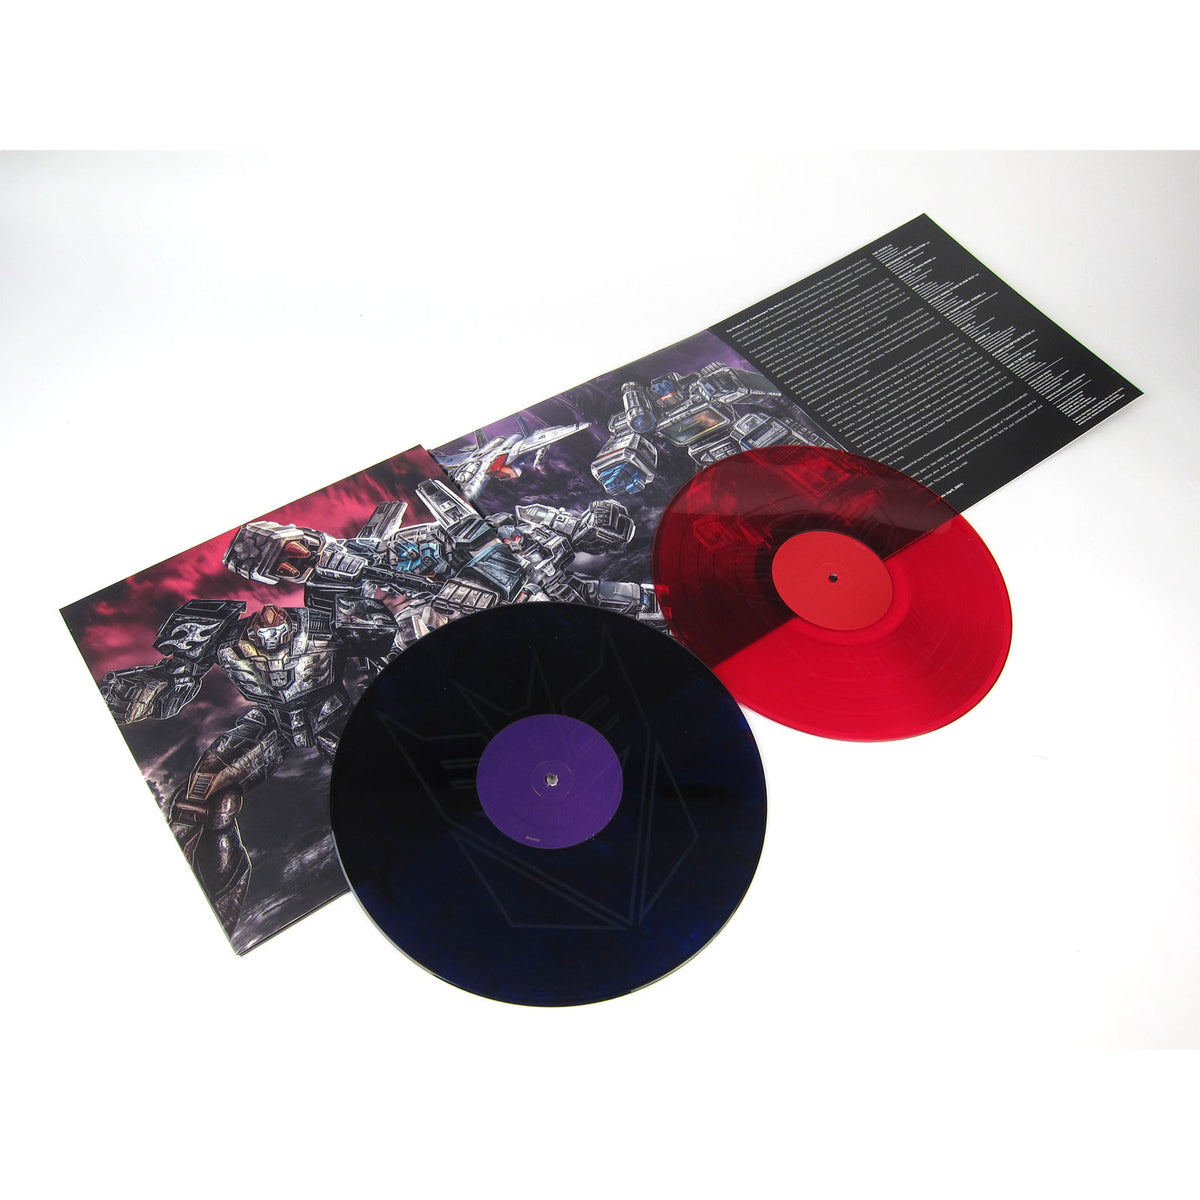 Transformers: The Movie Soundtrack (Colored Vinyl) Vinyl 2LP (Record Store Day)